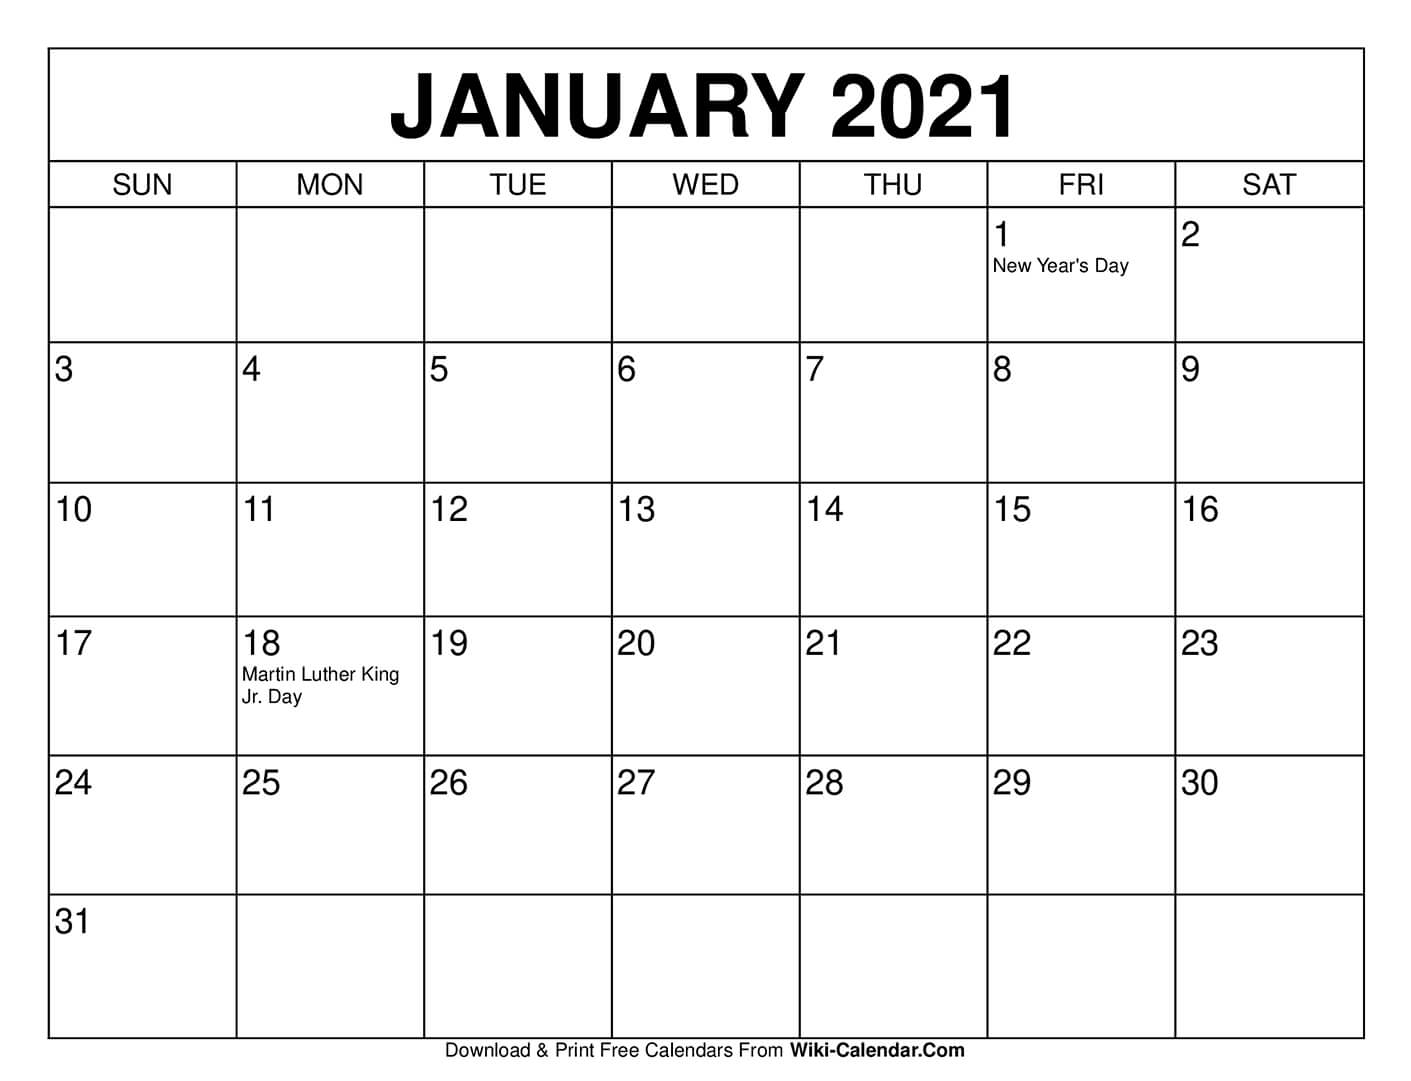 Calendar Template January 2021 Free Printable January 2021 Calendars